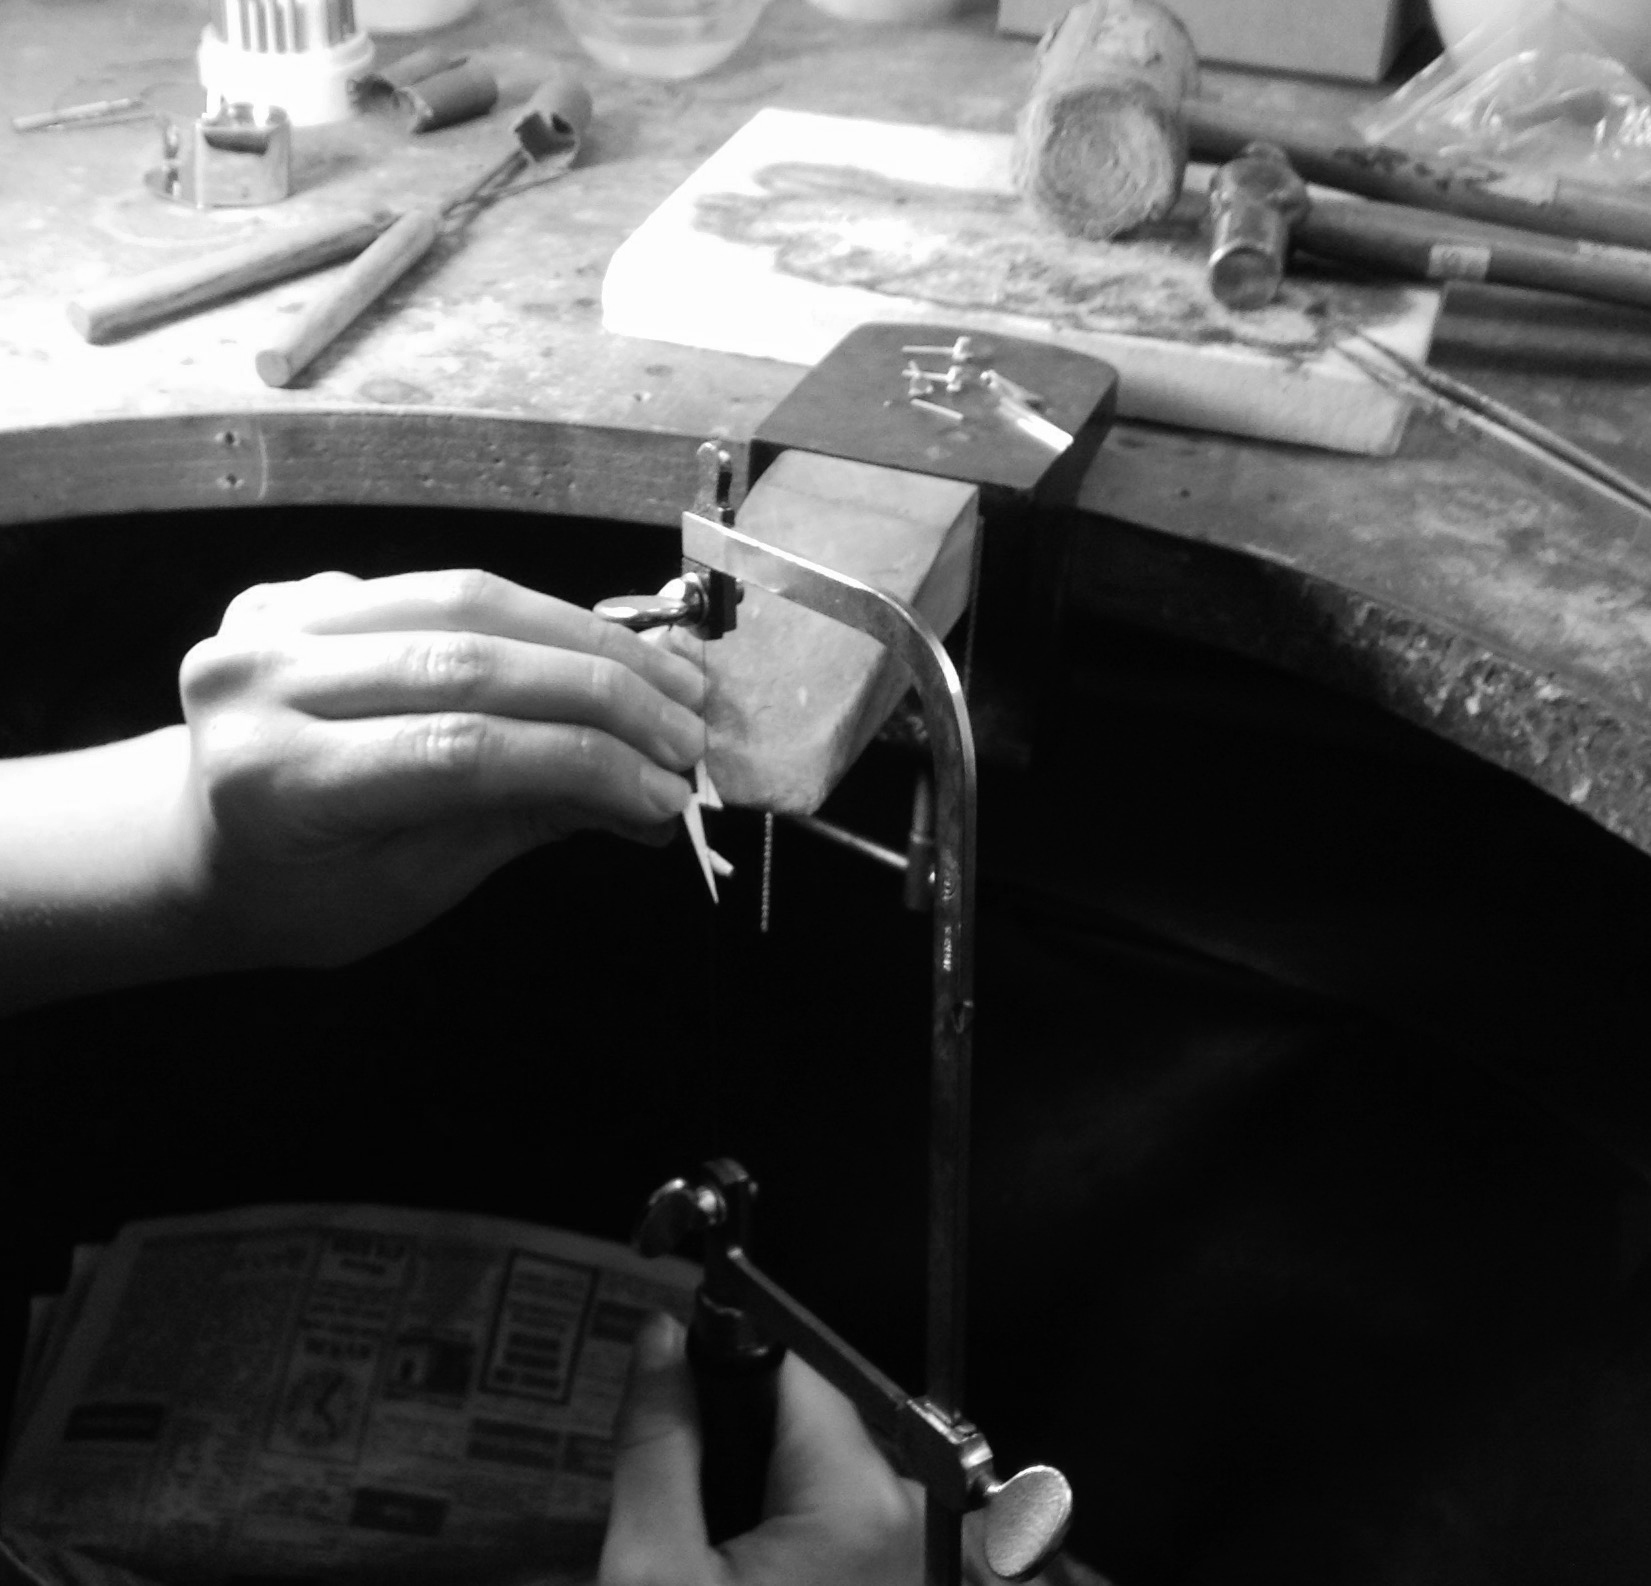 Stella by TORY & KO. Lightning Bolt Earrings being created at the workbench.